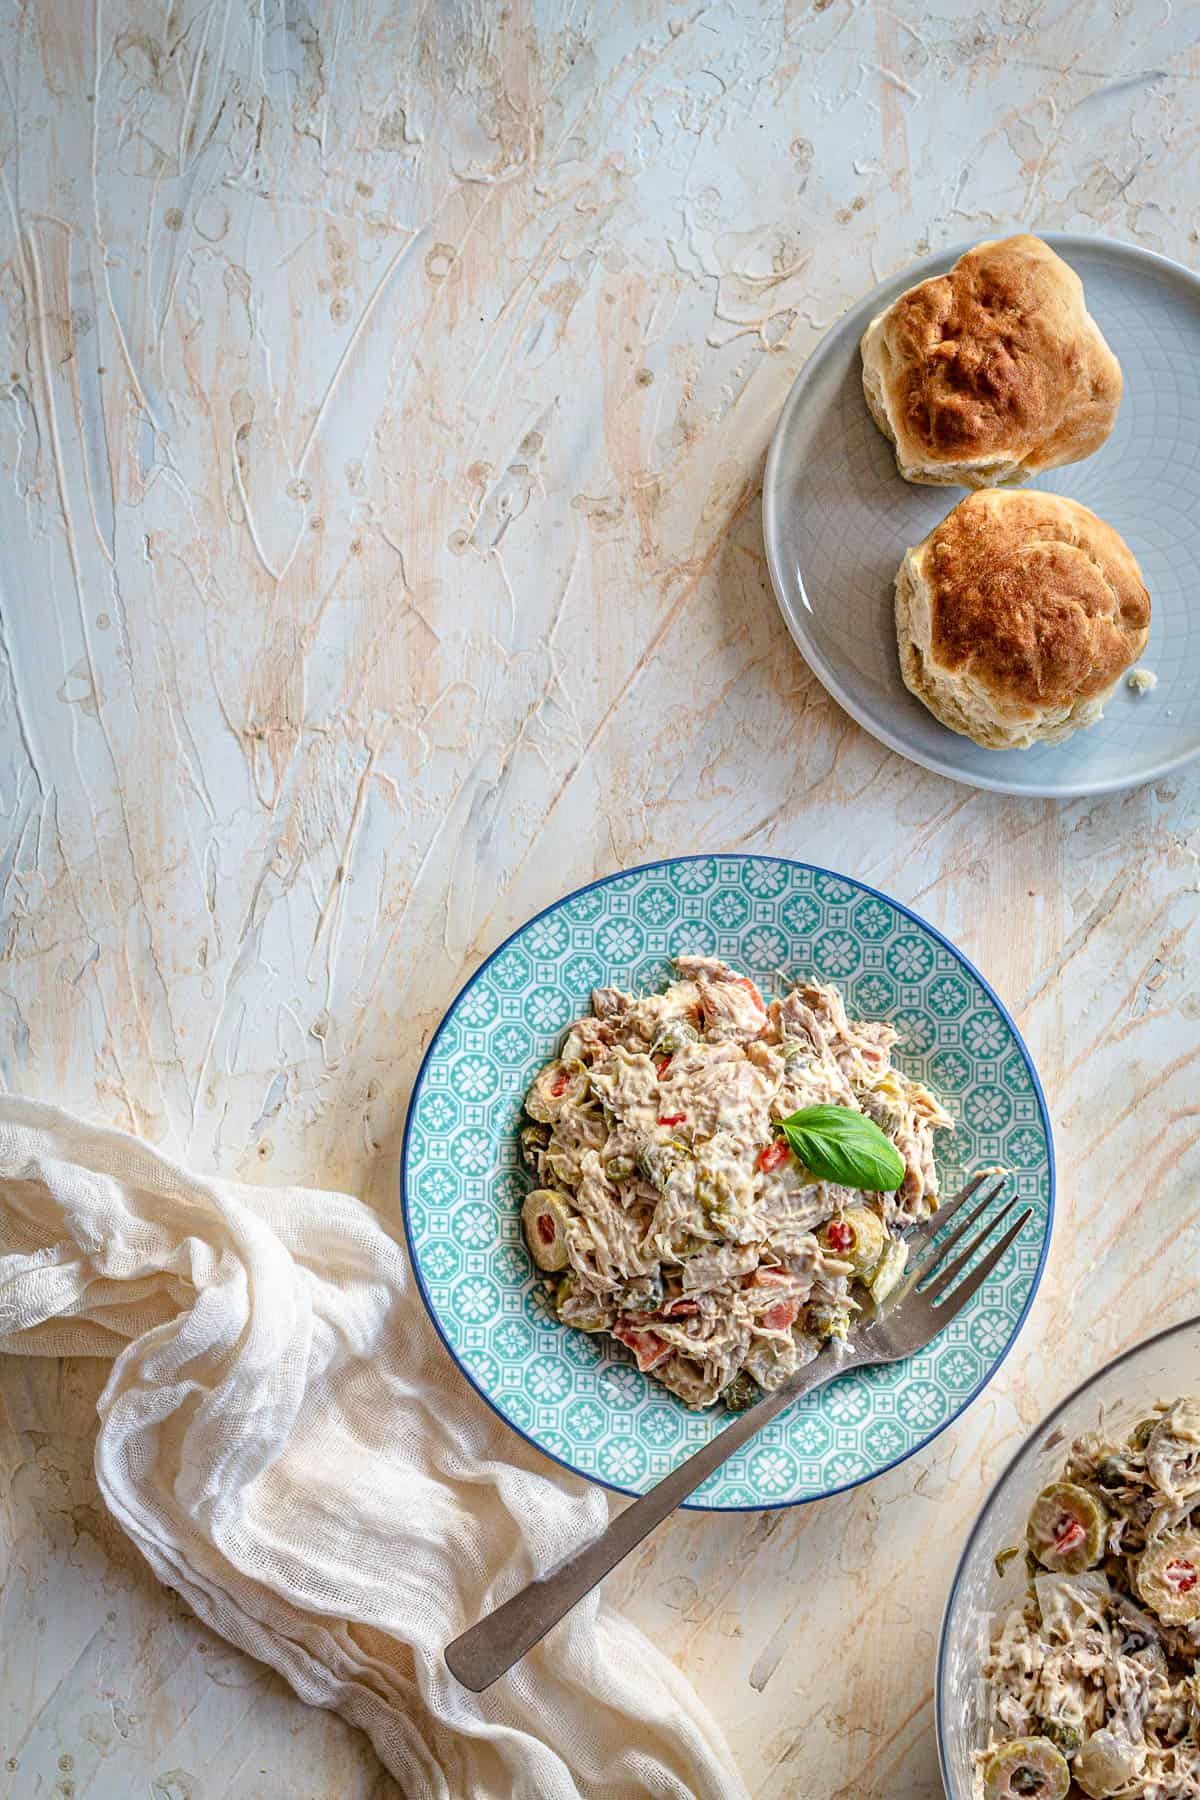 a plate of chicken salad with a fork inside and bread rolls aside